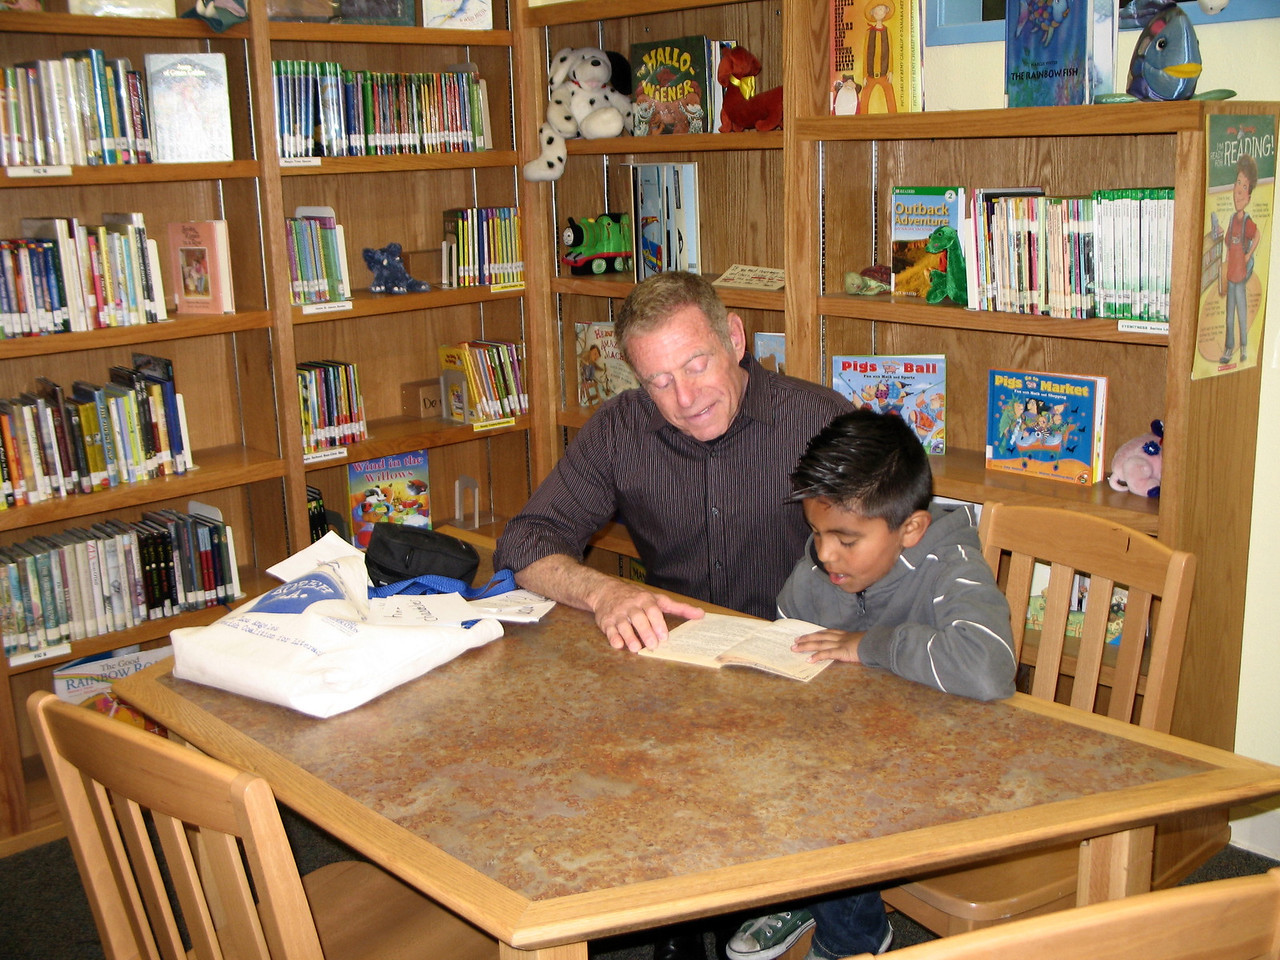 KOREH L.A. volunteer Les G. and 3rd grader Manny S. at Charnock Road Elementary.